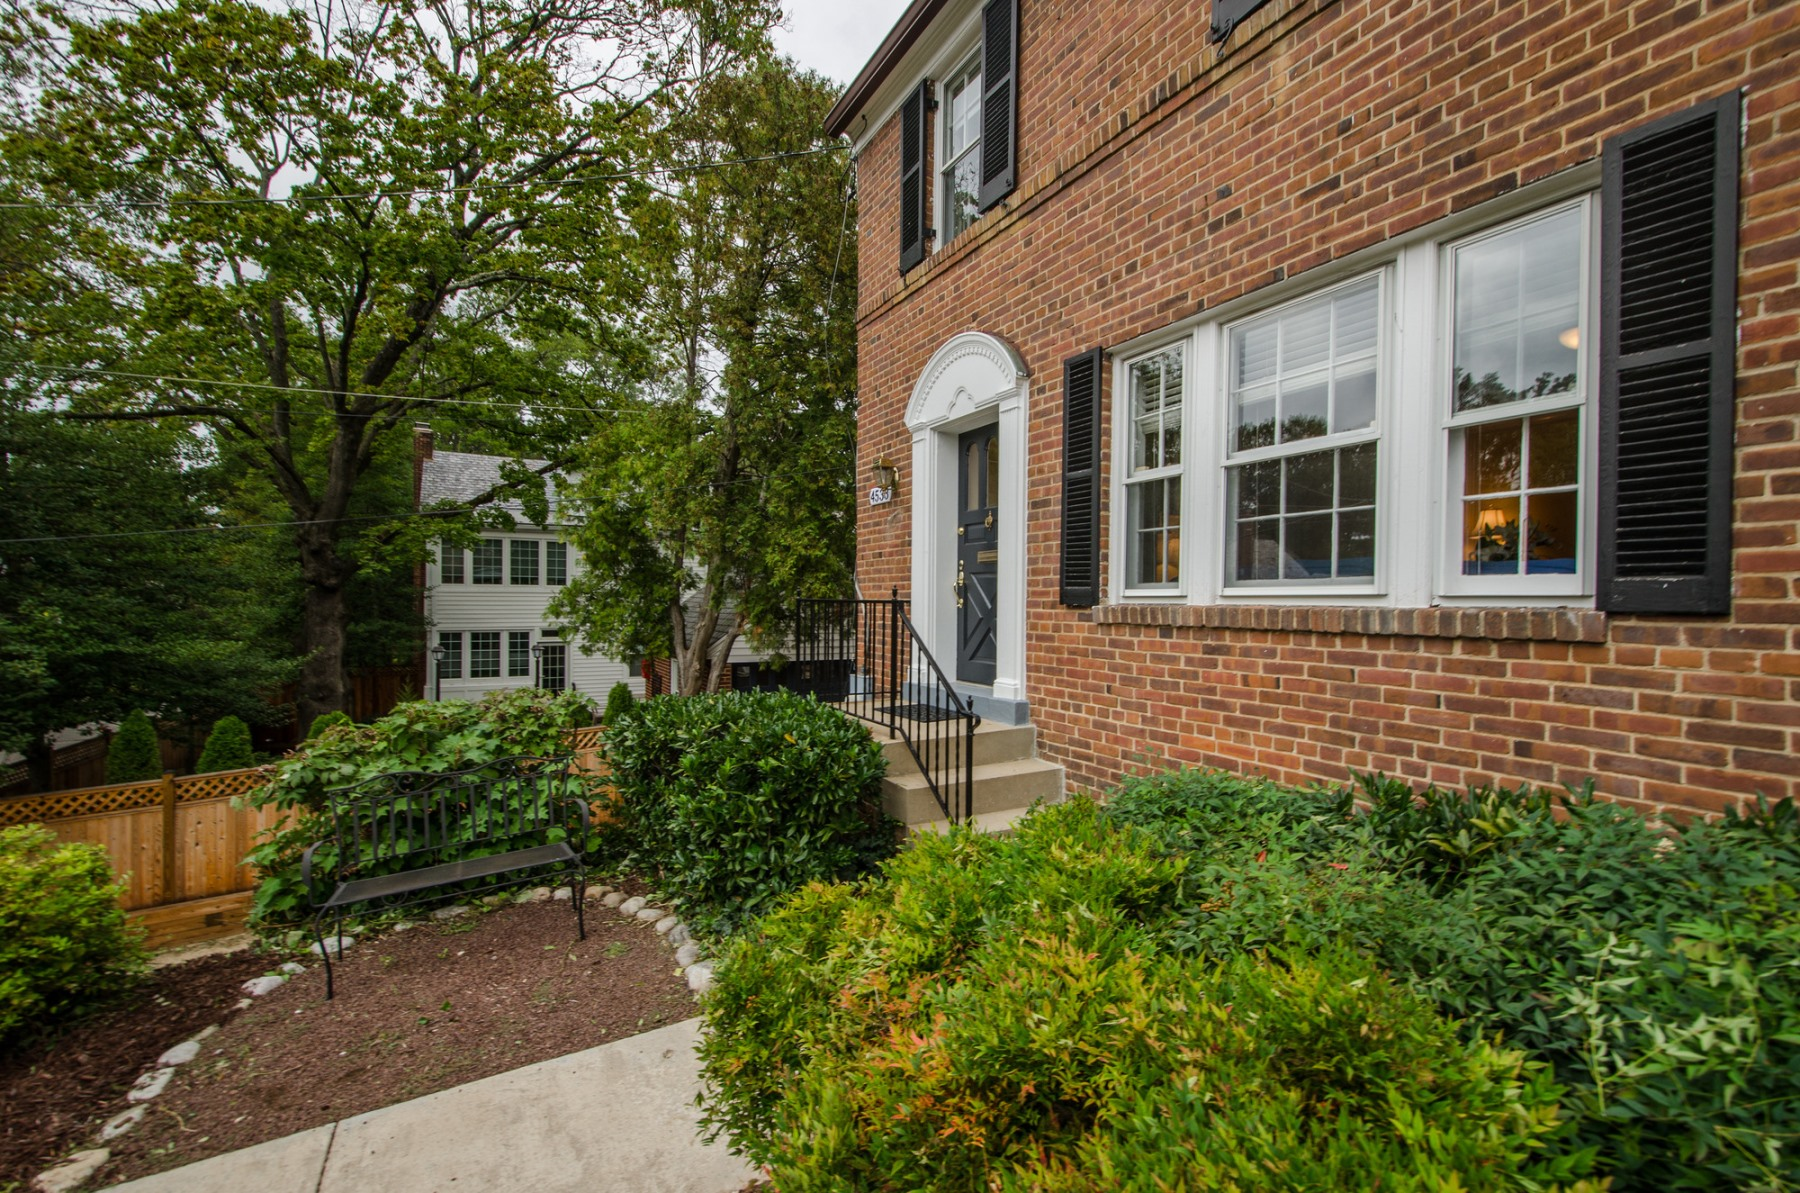 Single Family Home for Sale at 4533 Verplanck Place Nw, Washington Washington, District Of Columbia 20016 United States